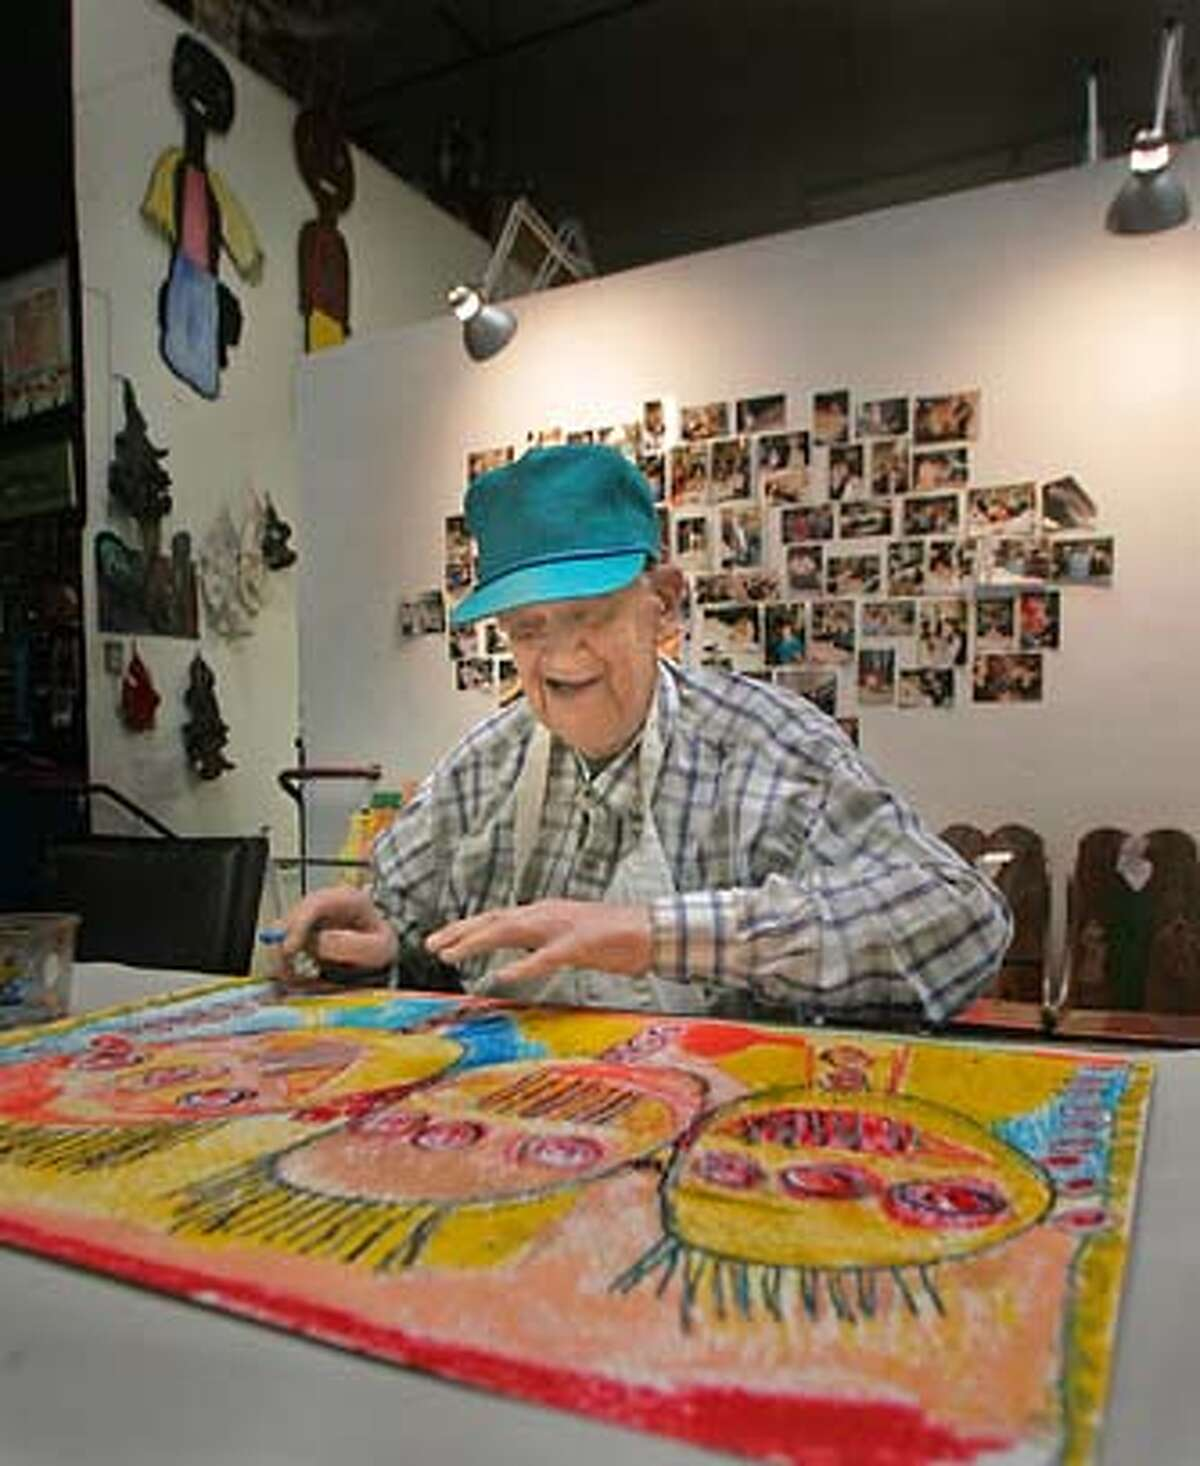 Event on 11/22/04 in San Francisco. Melvin Geisenhoffer works on a picture at Creativity Explored. Photos from Creativity Explored, a nonprofit that teaches and promotes art among people with disabilities. They are having their popular holiday art sale Dec. 3, 4, and 5. Liz Mangelsdorf / The Chronicle